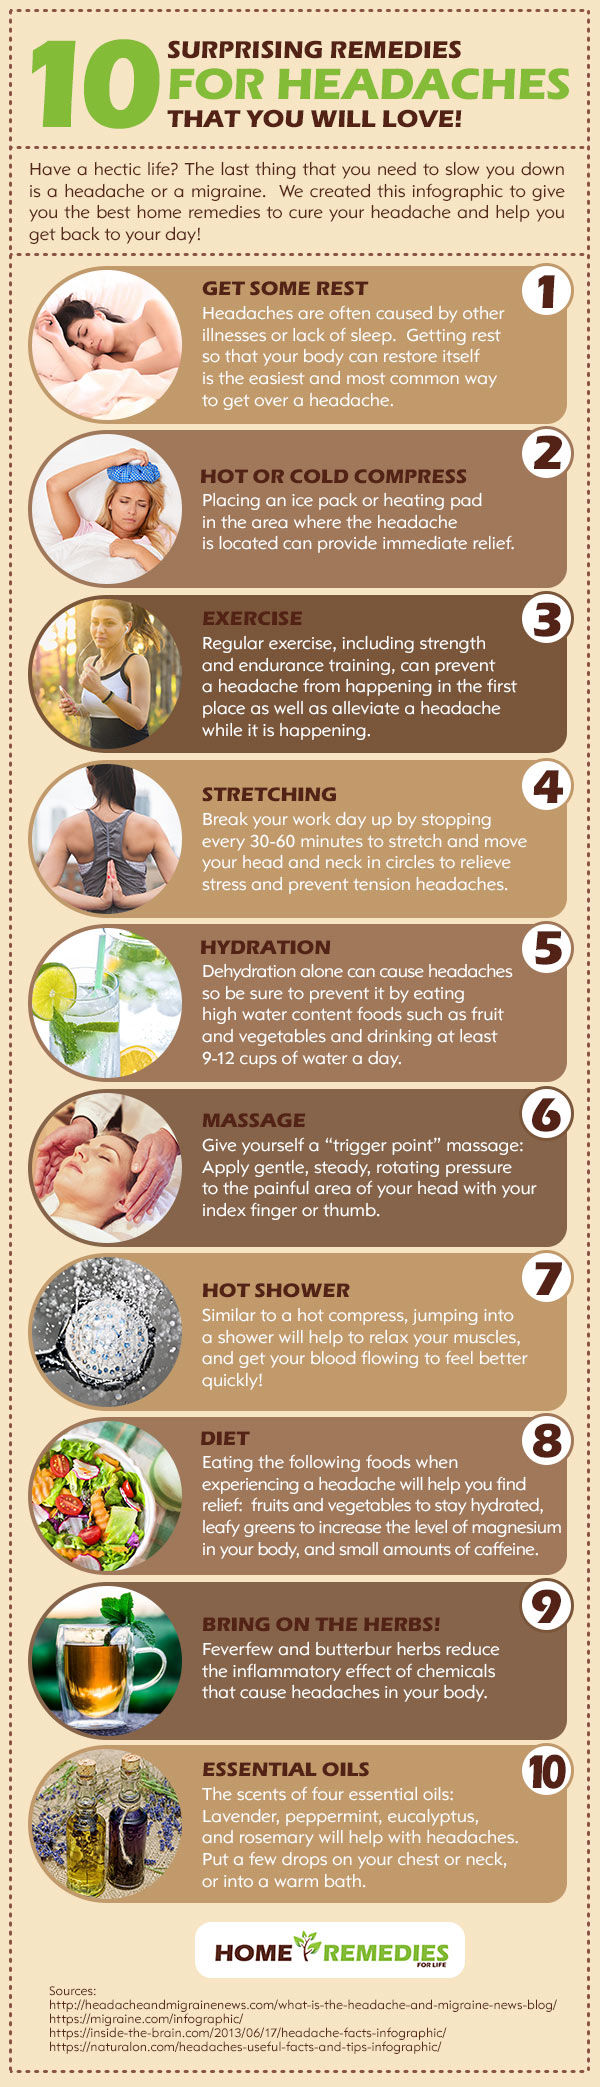 10 Surprising Remedies for Headaches That You Will Love!